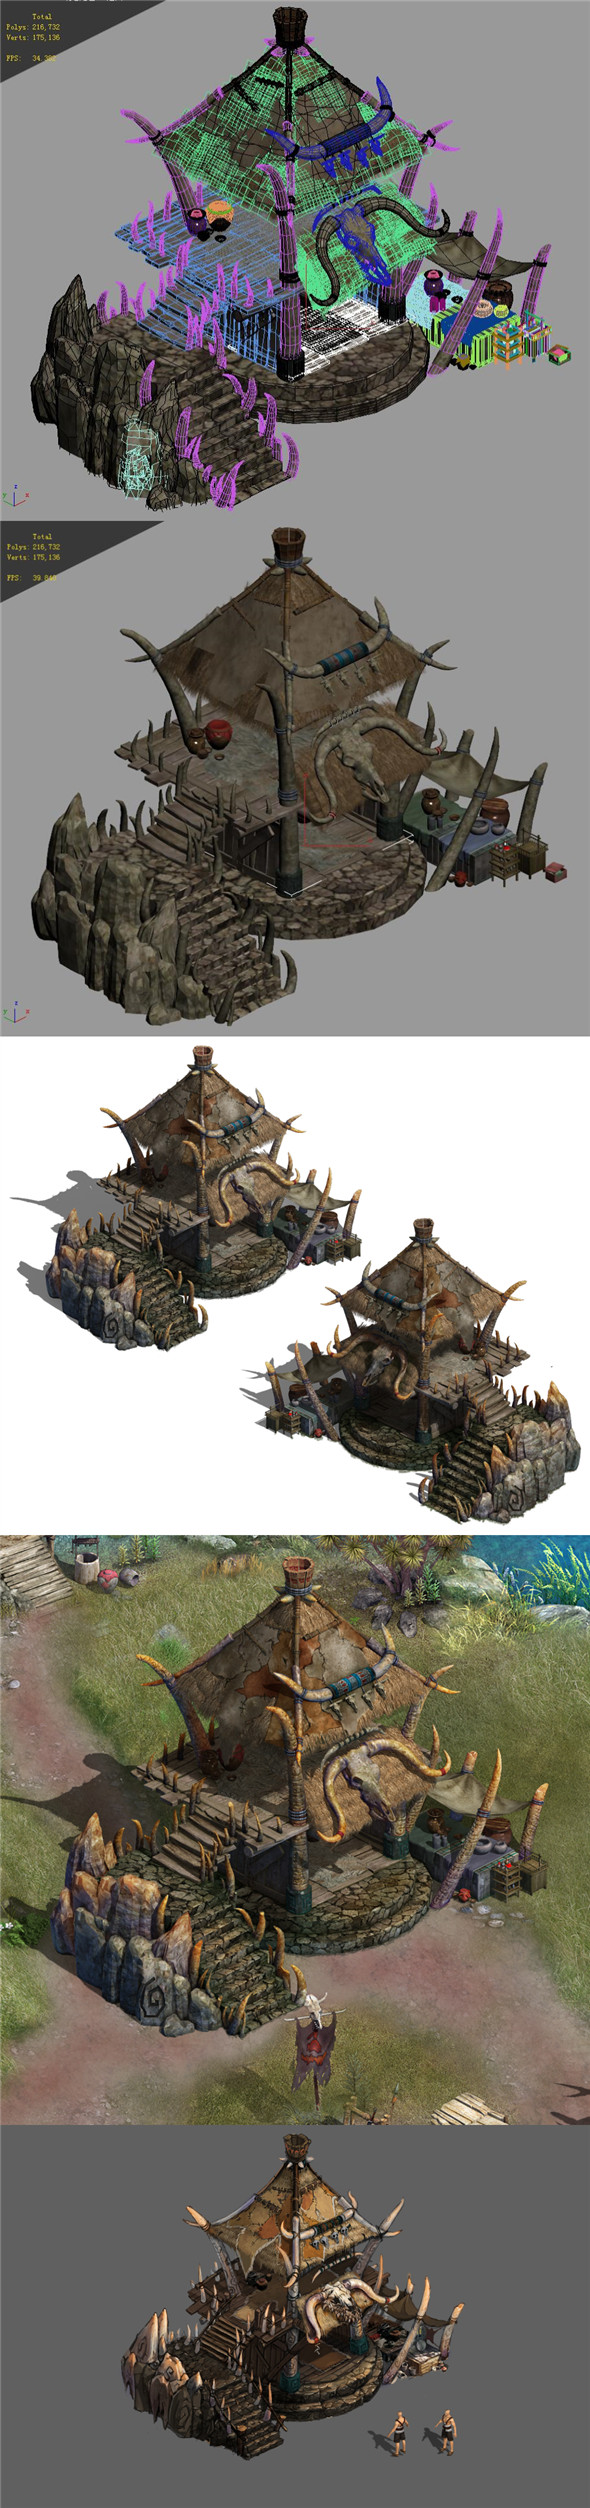 Regulus tribe - Horns House 01 - 3DOcean Item for Sale